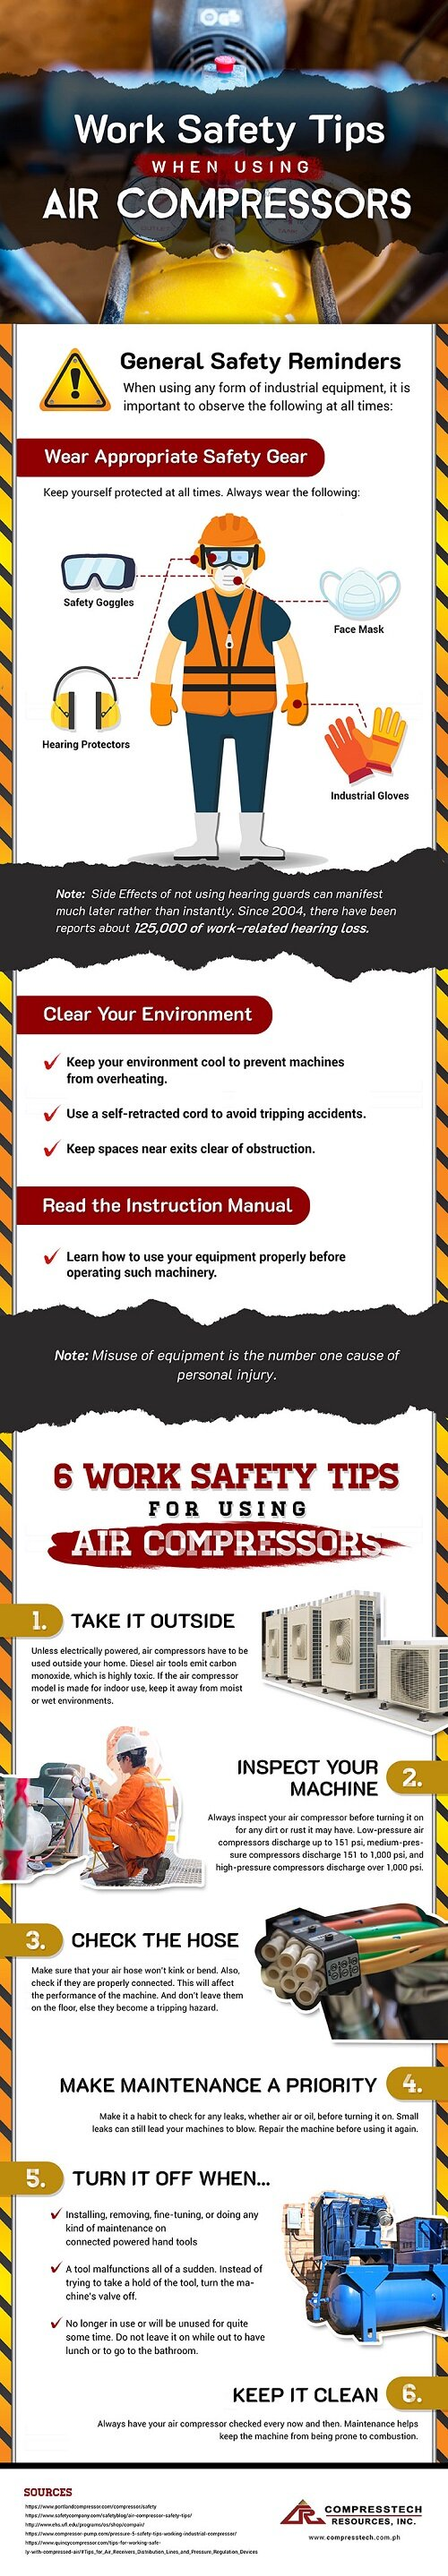 1-Infographics-Work-Safety-Tips-When-Using-Air-Compressors.jpg